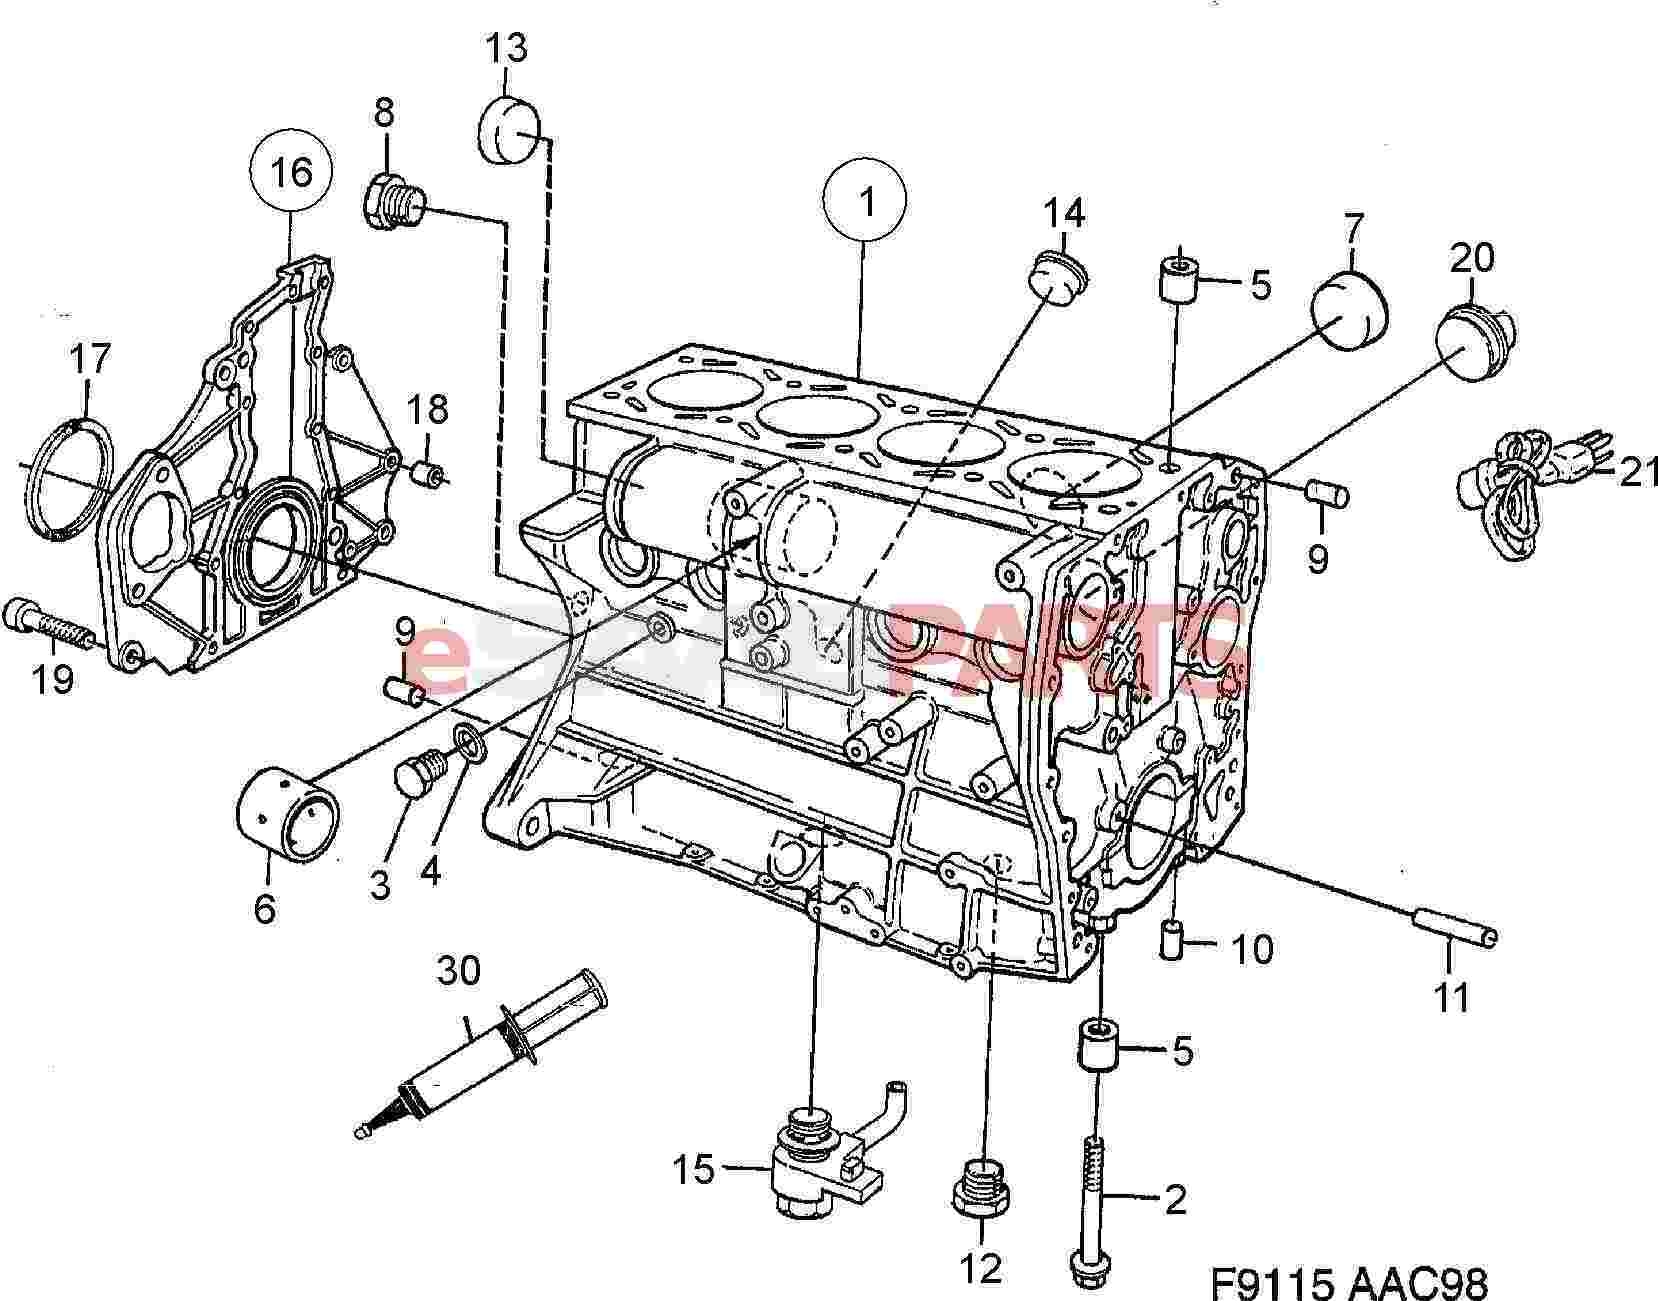 hight resolution of saab turbo engine diagram great design of wiring diagram u2022 rh homewerk co 1988 saab 900